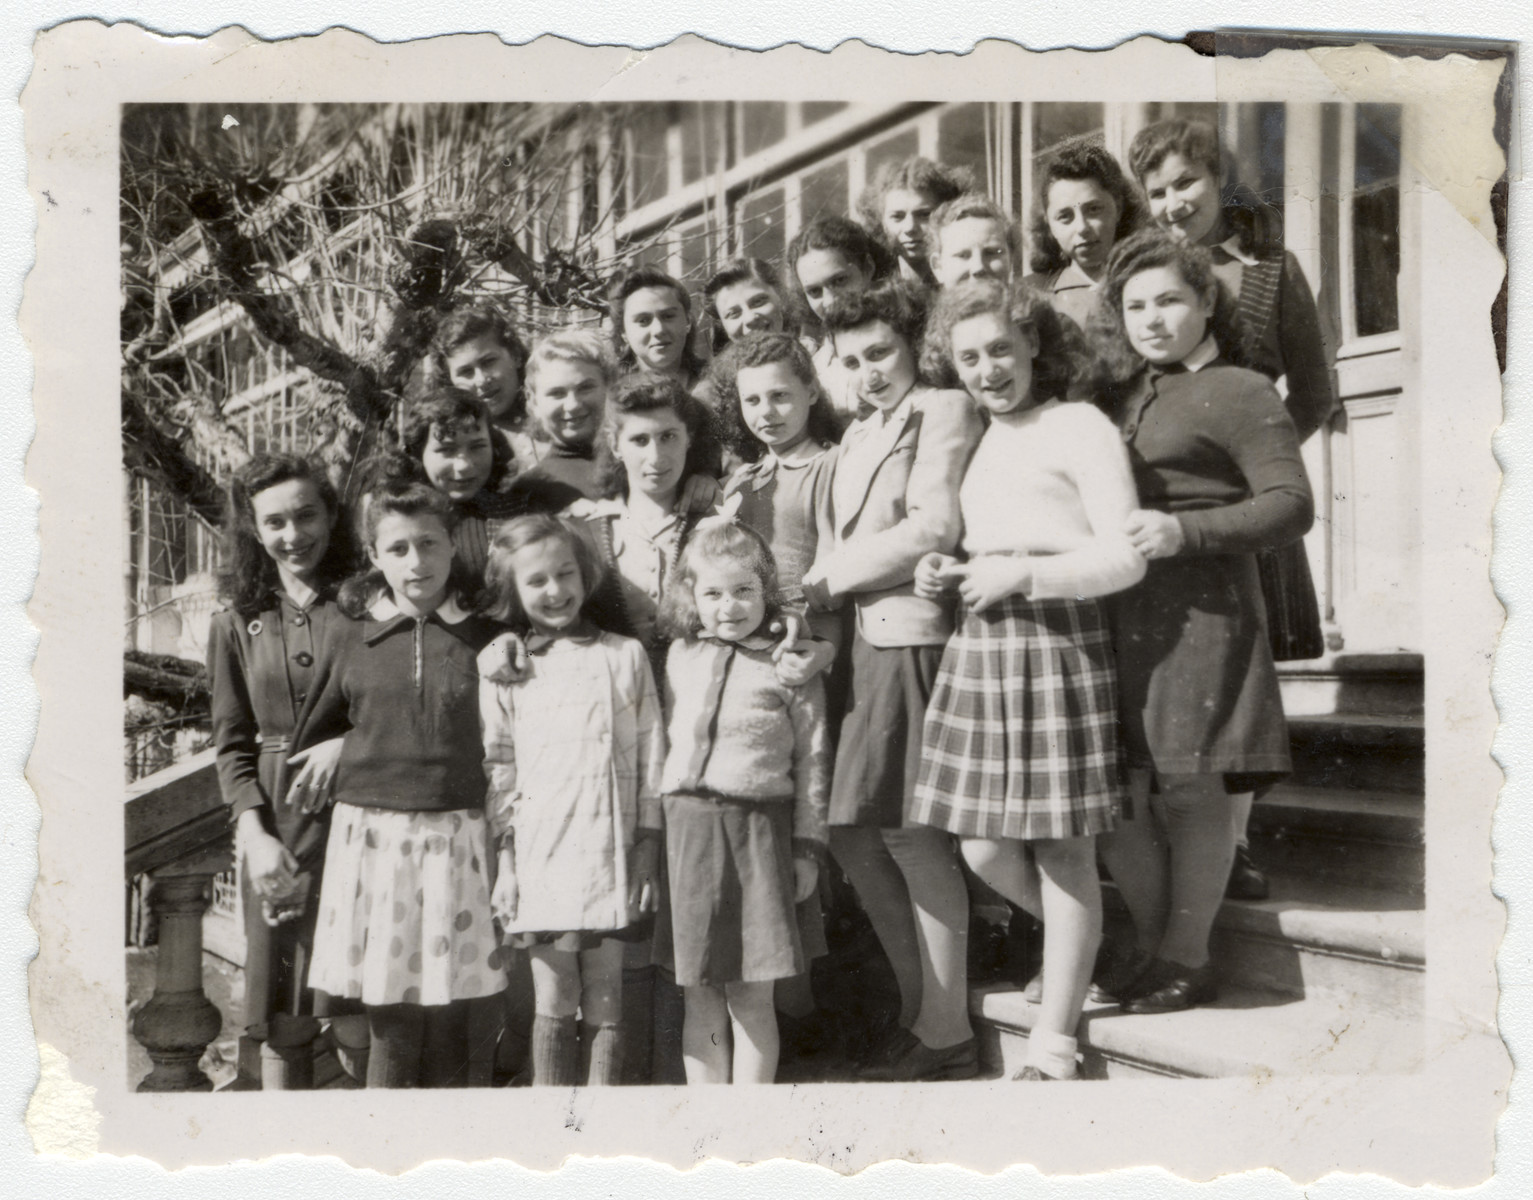 Group portrait of Jewish girls in the Agudat Yisrael home in Henonville.